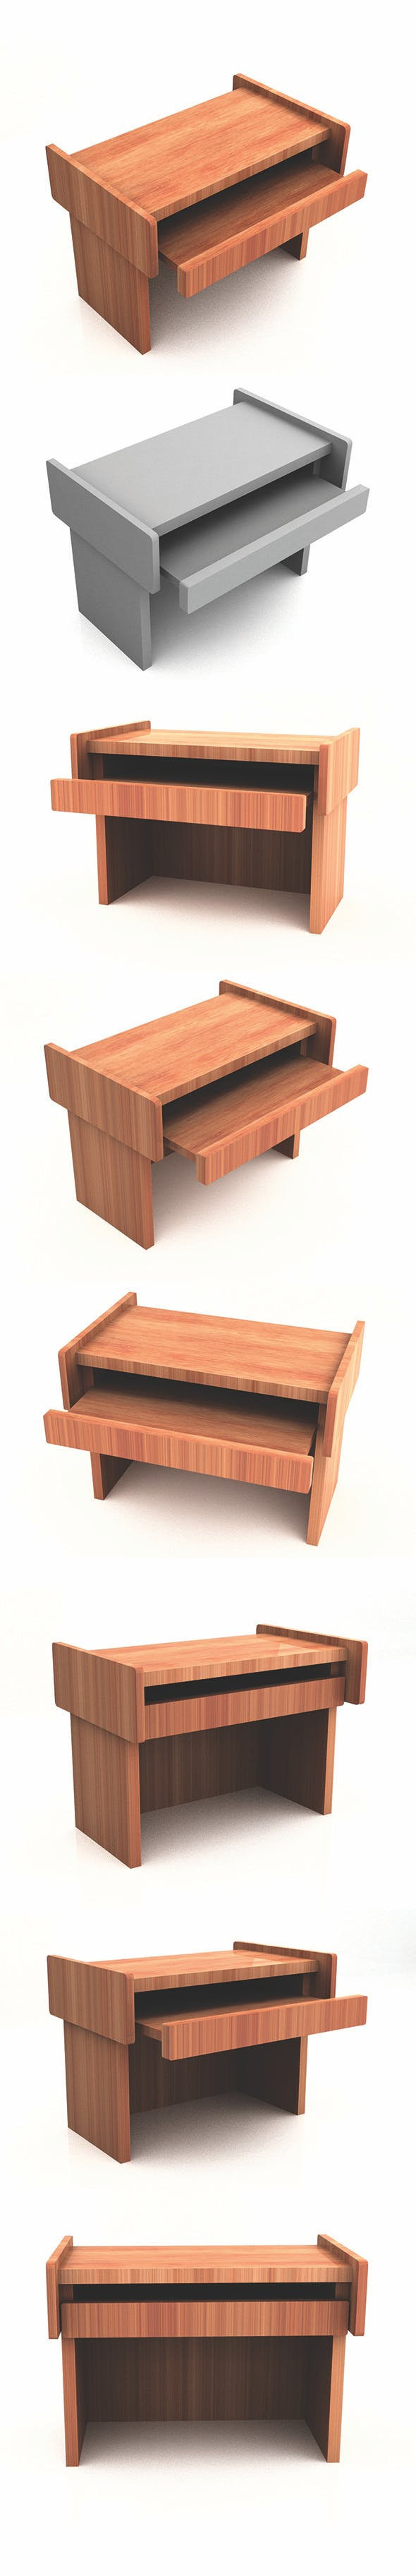 Realistic Computer Wood Table - 3DOcean Item for Sale